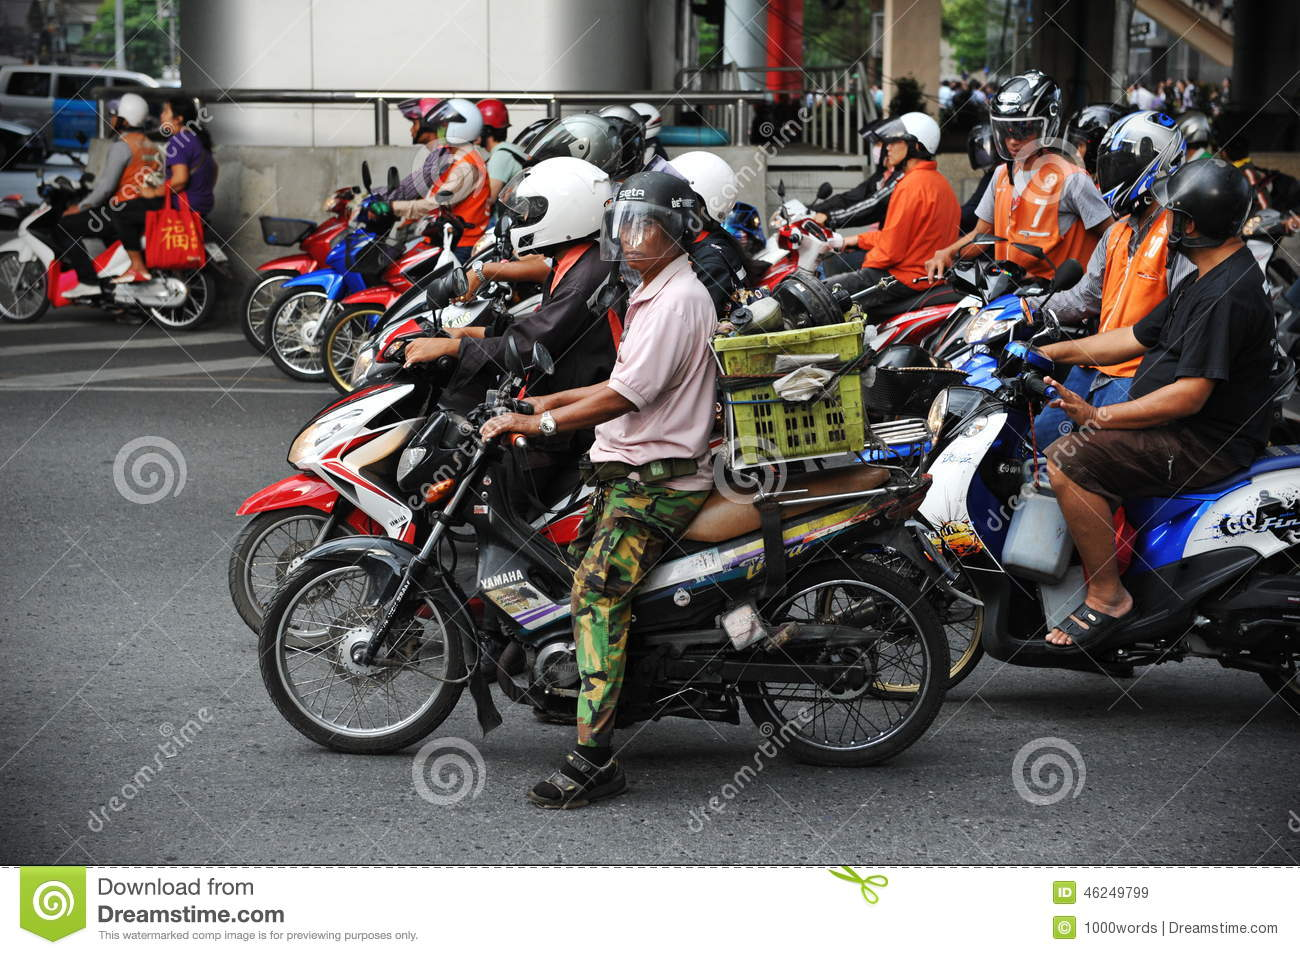 Motorcyclists at a Junction